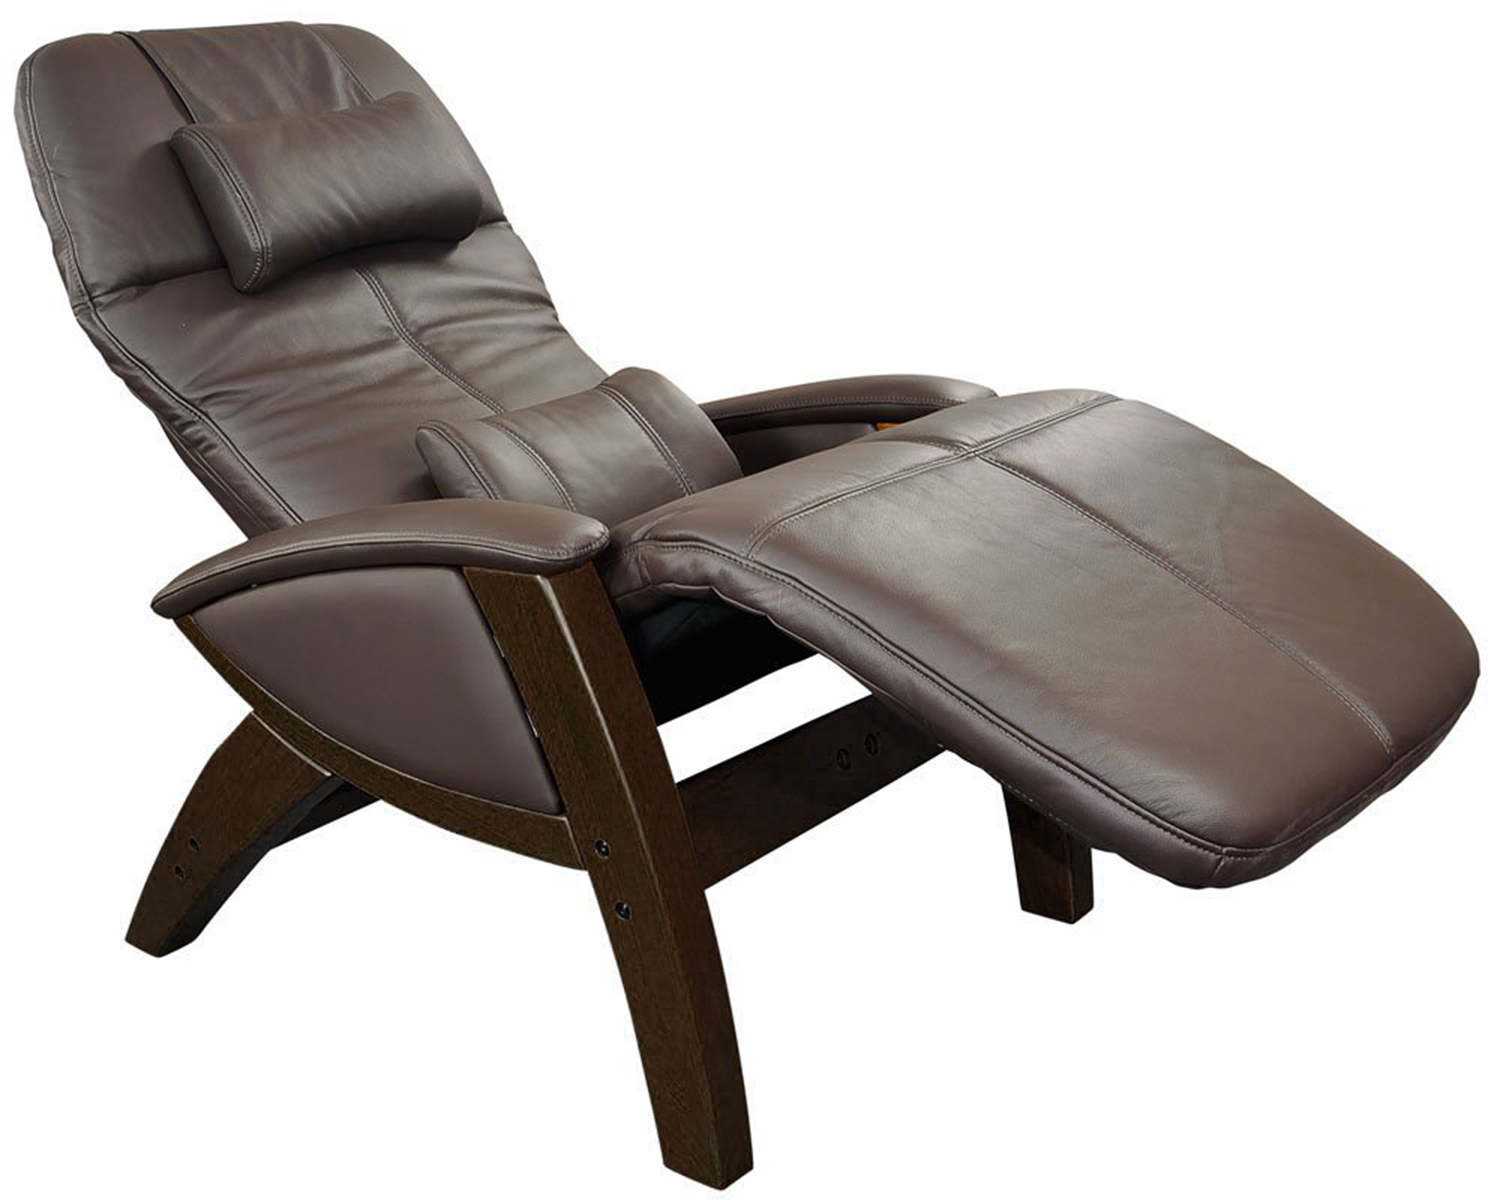 Chocolate Leather Svago SV400 Lusso Chair Zero Gravity Recliner  sc 1 st  Vitalityweb.com : zero gravity recliner leather - islam-shia.org